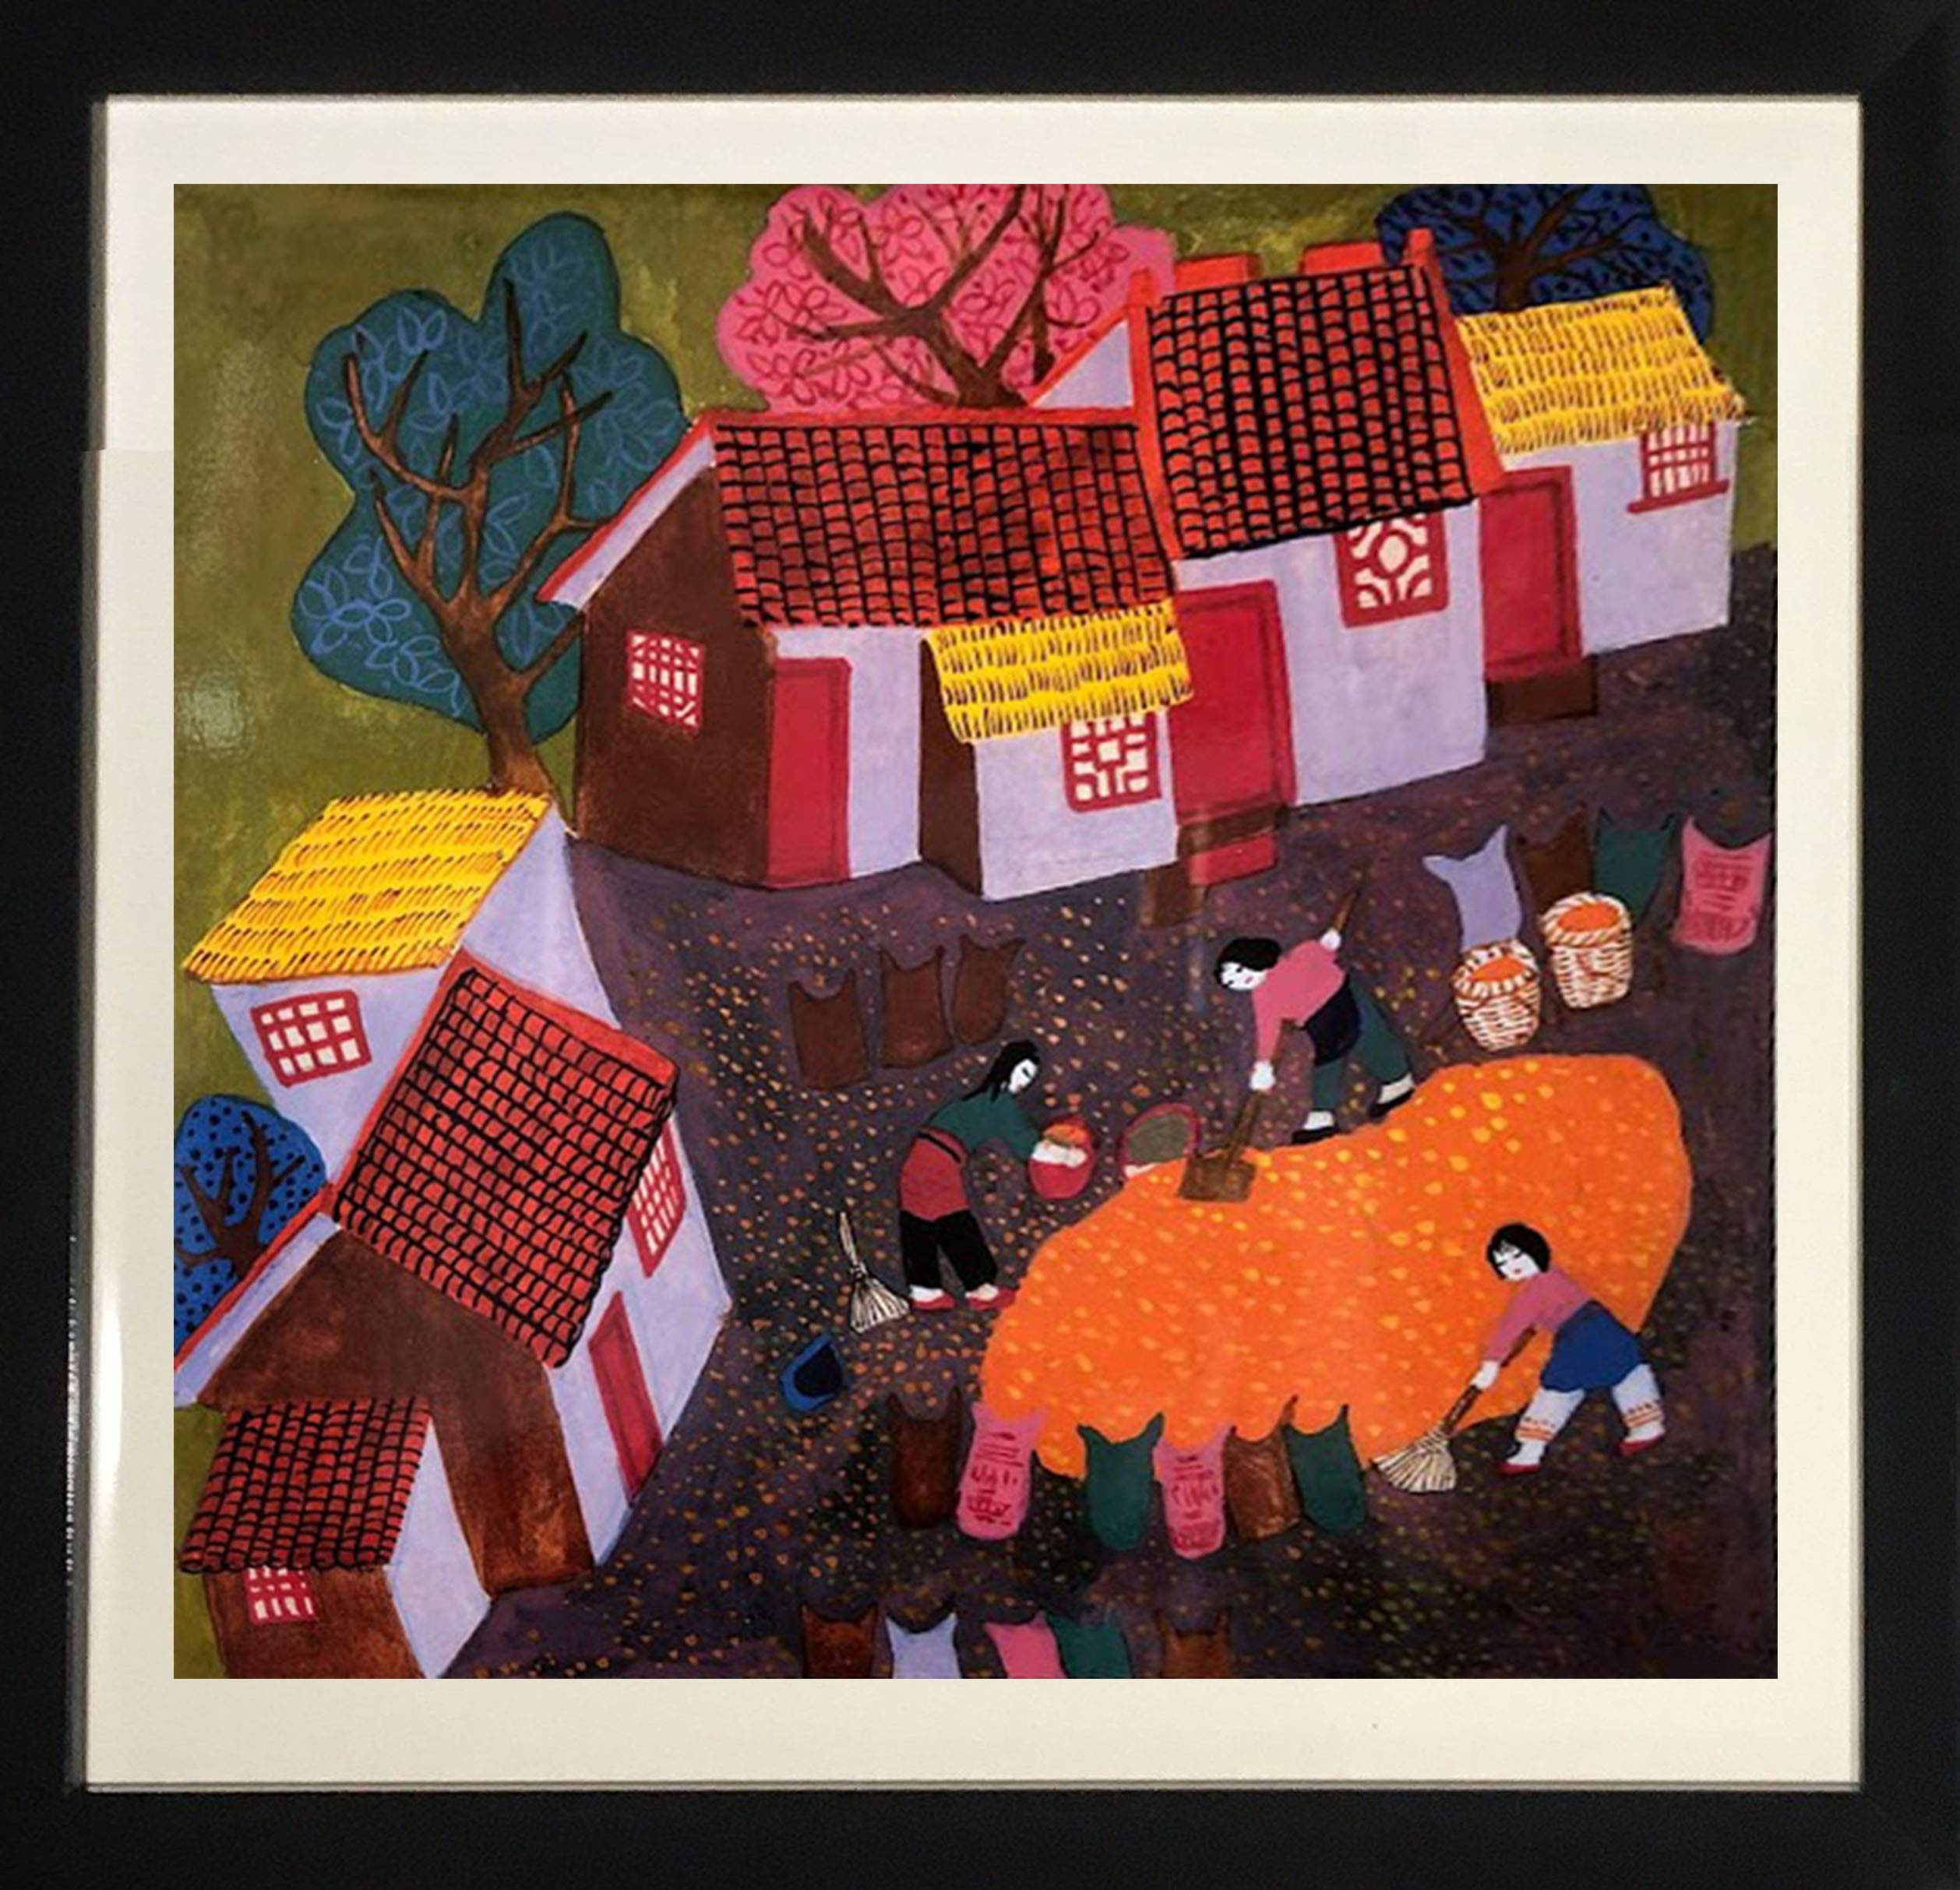 Framed Art''The Village'' by Adell Hicks by